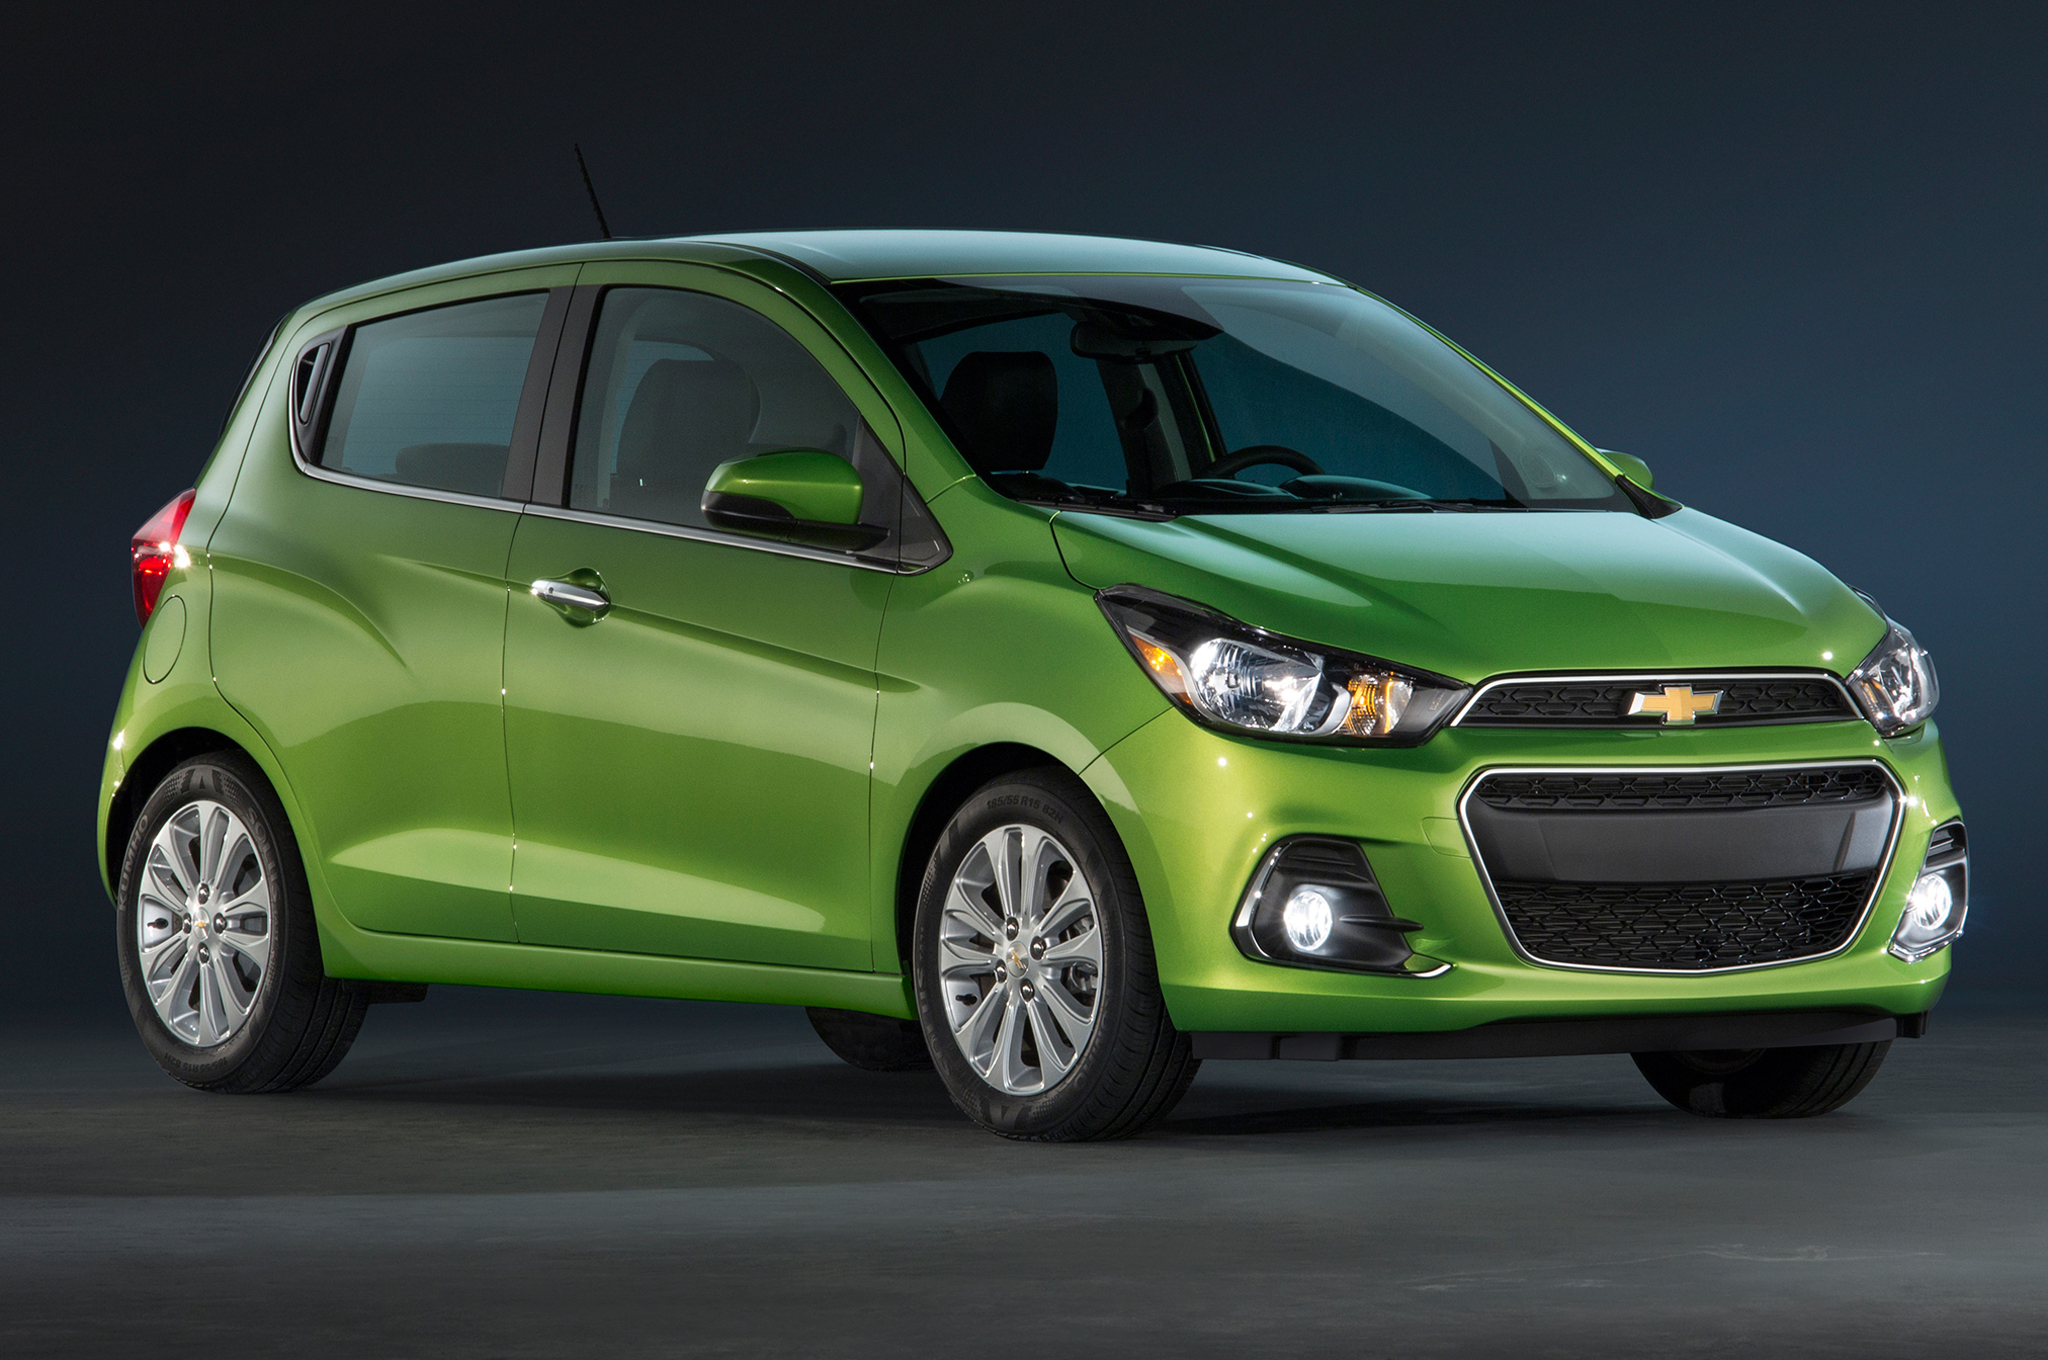 medium resolution of 2016 chevrolet spark first look motortrend automotive fuse box wiring 2016 chevrolet spark first look